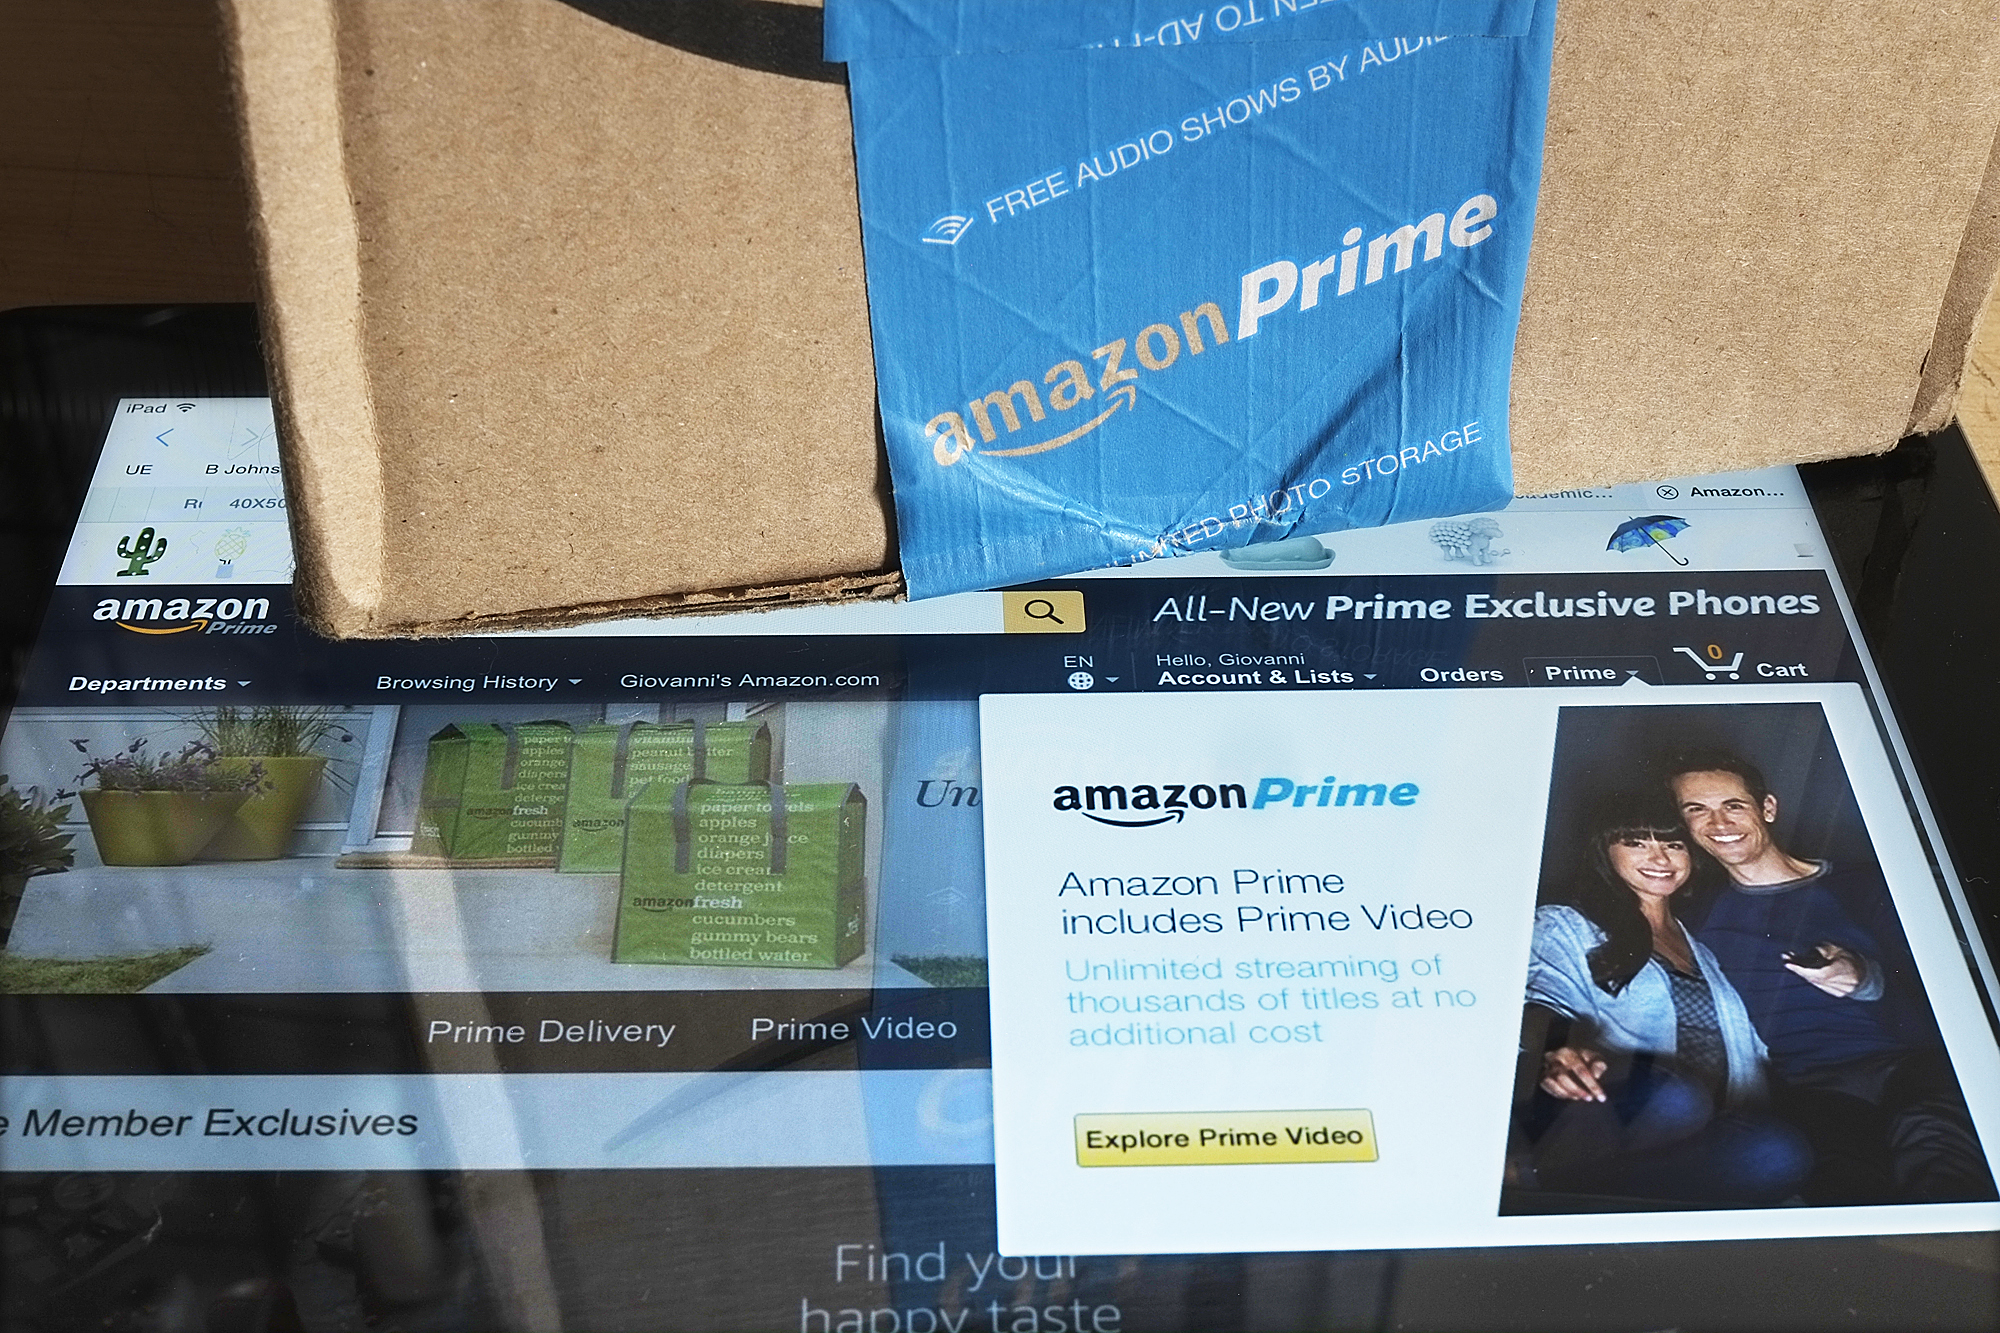 How to Get Amazon Prime